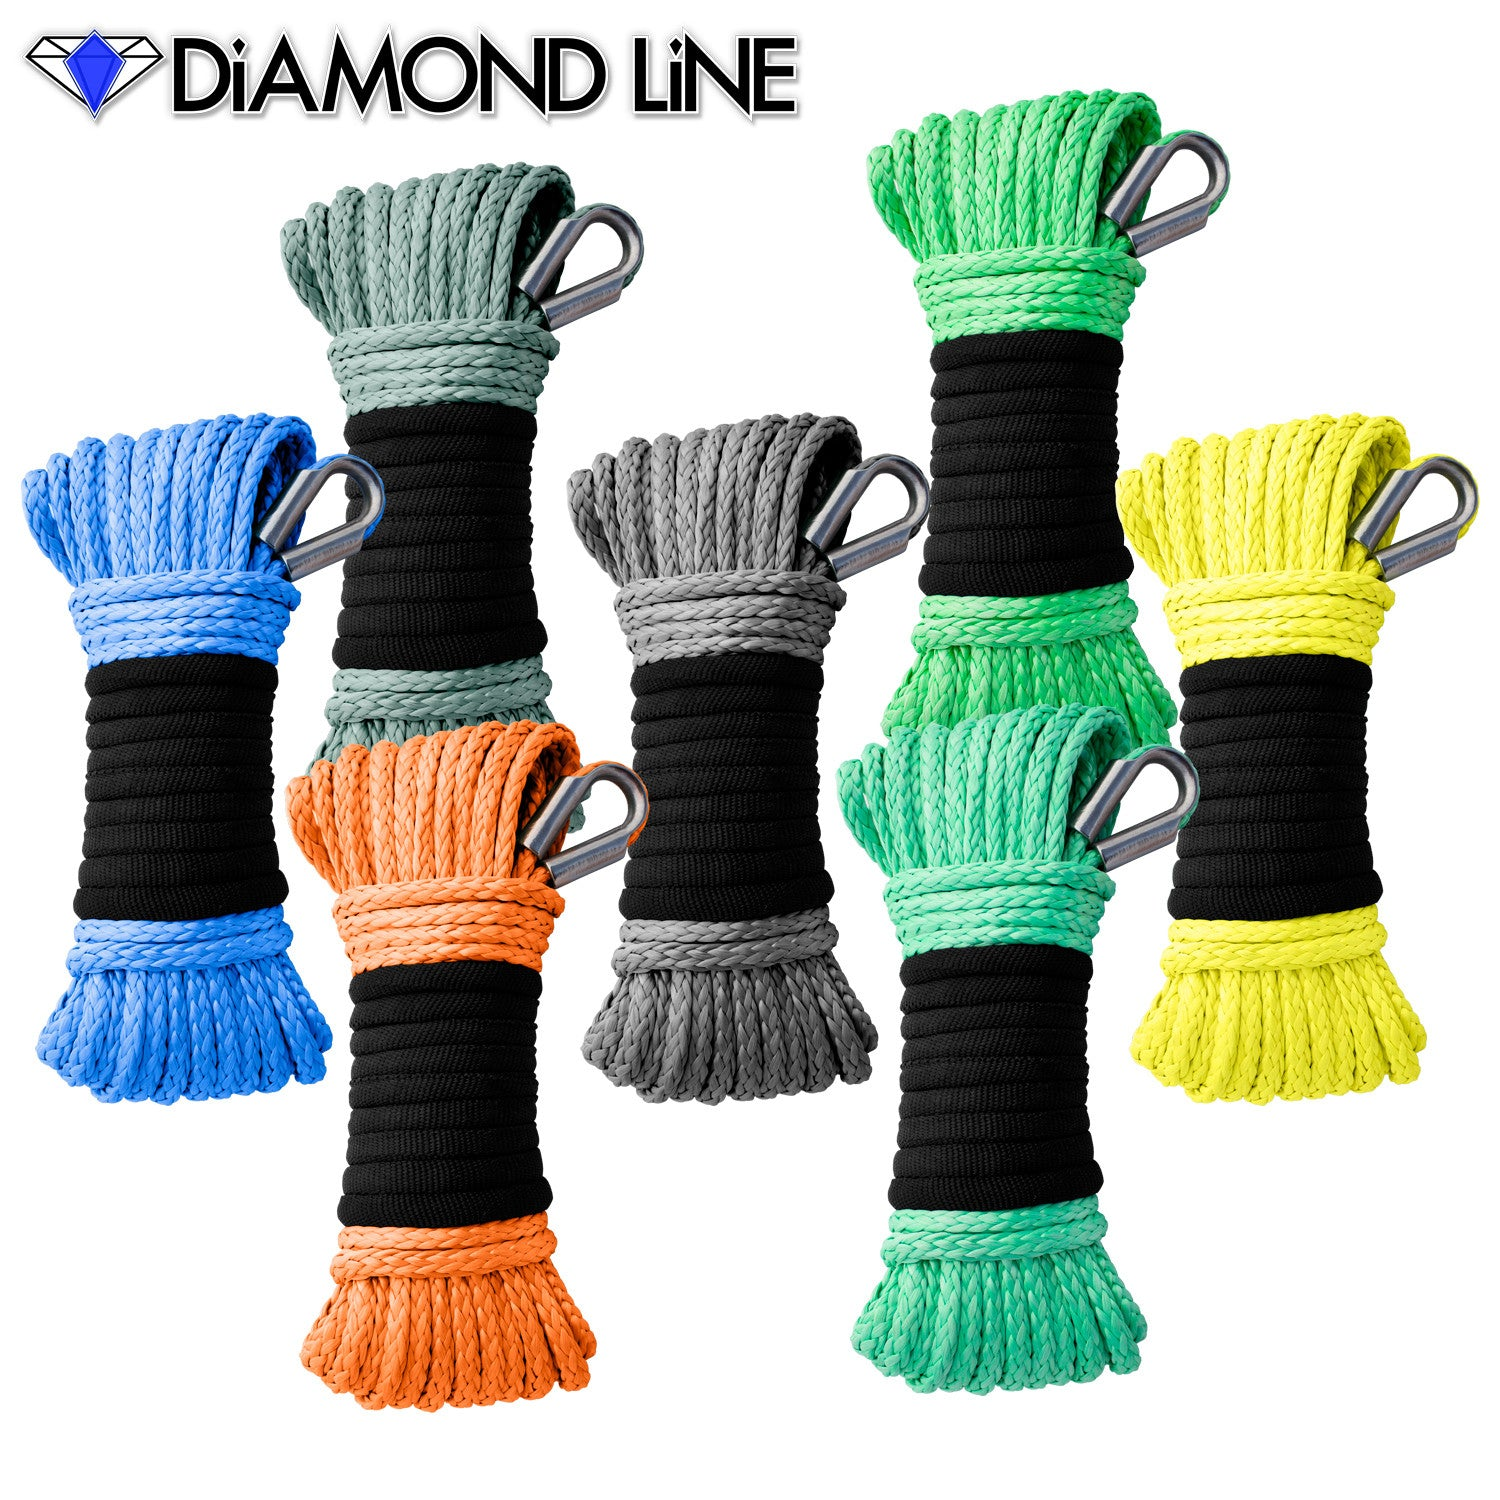 "3/16"" x 50' Diamond Line Winch Rope Mainline - Assorted Colors"